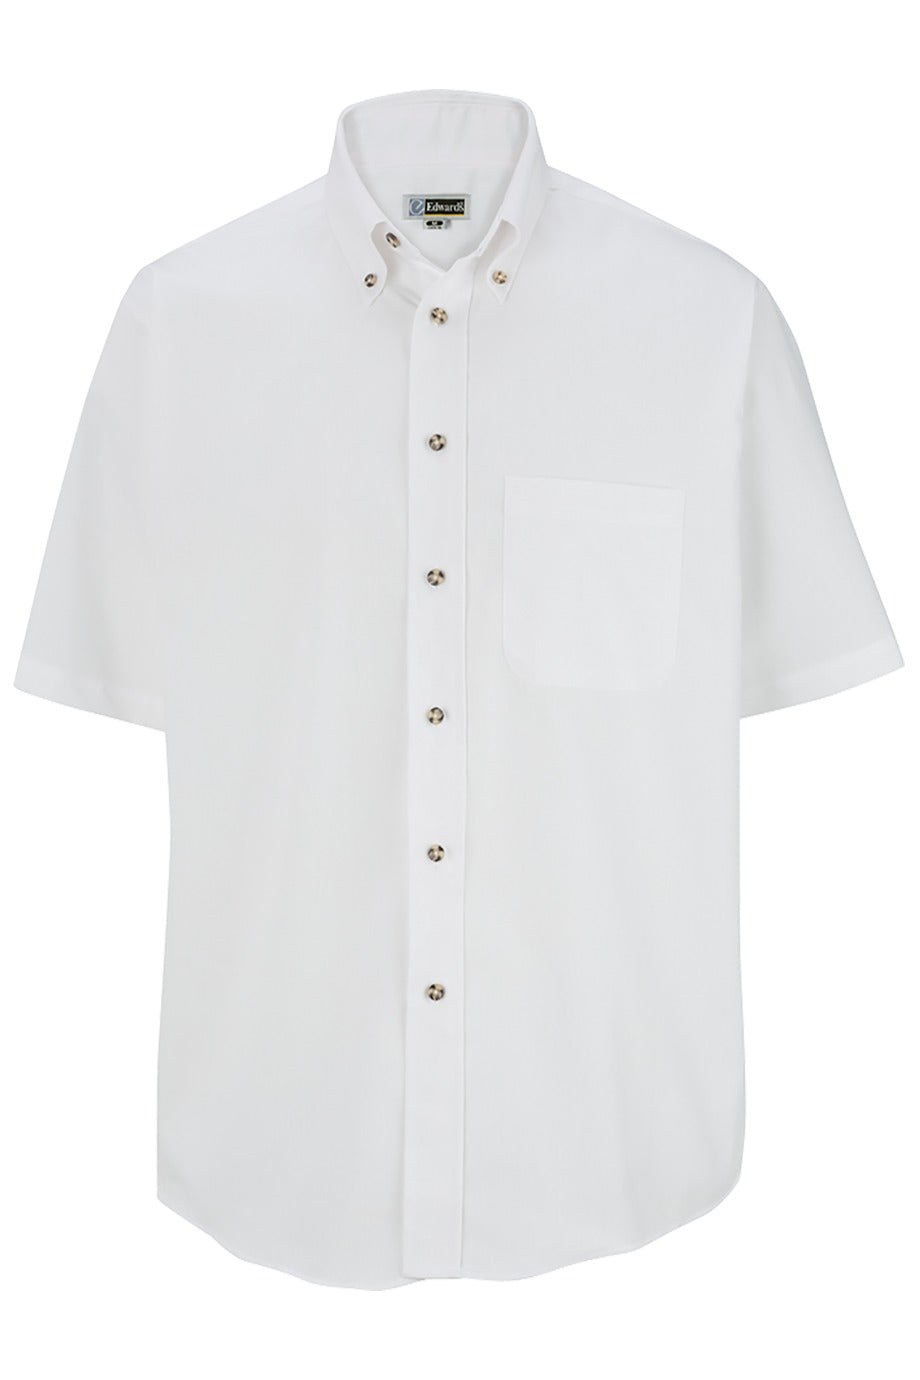 Men's White Easy Care Short Sleeve Poplin Shirt